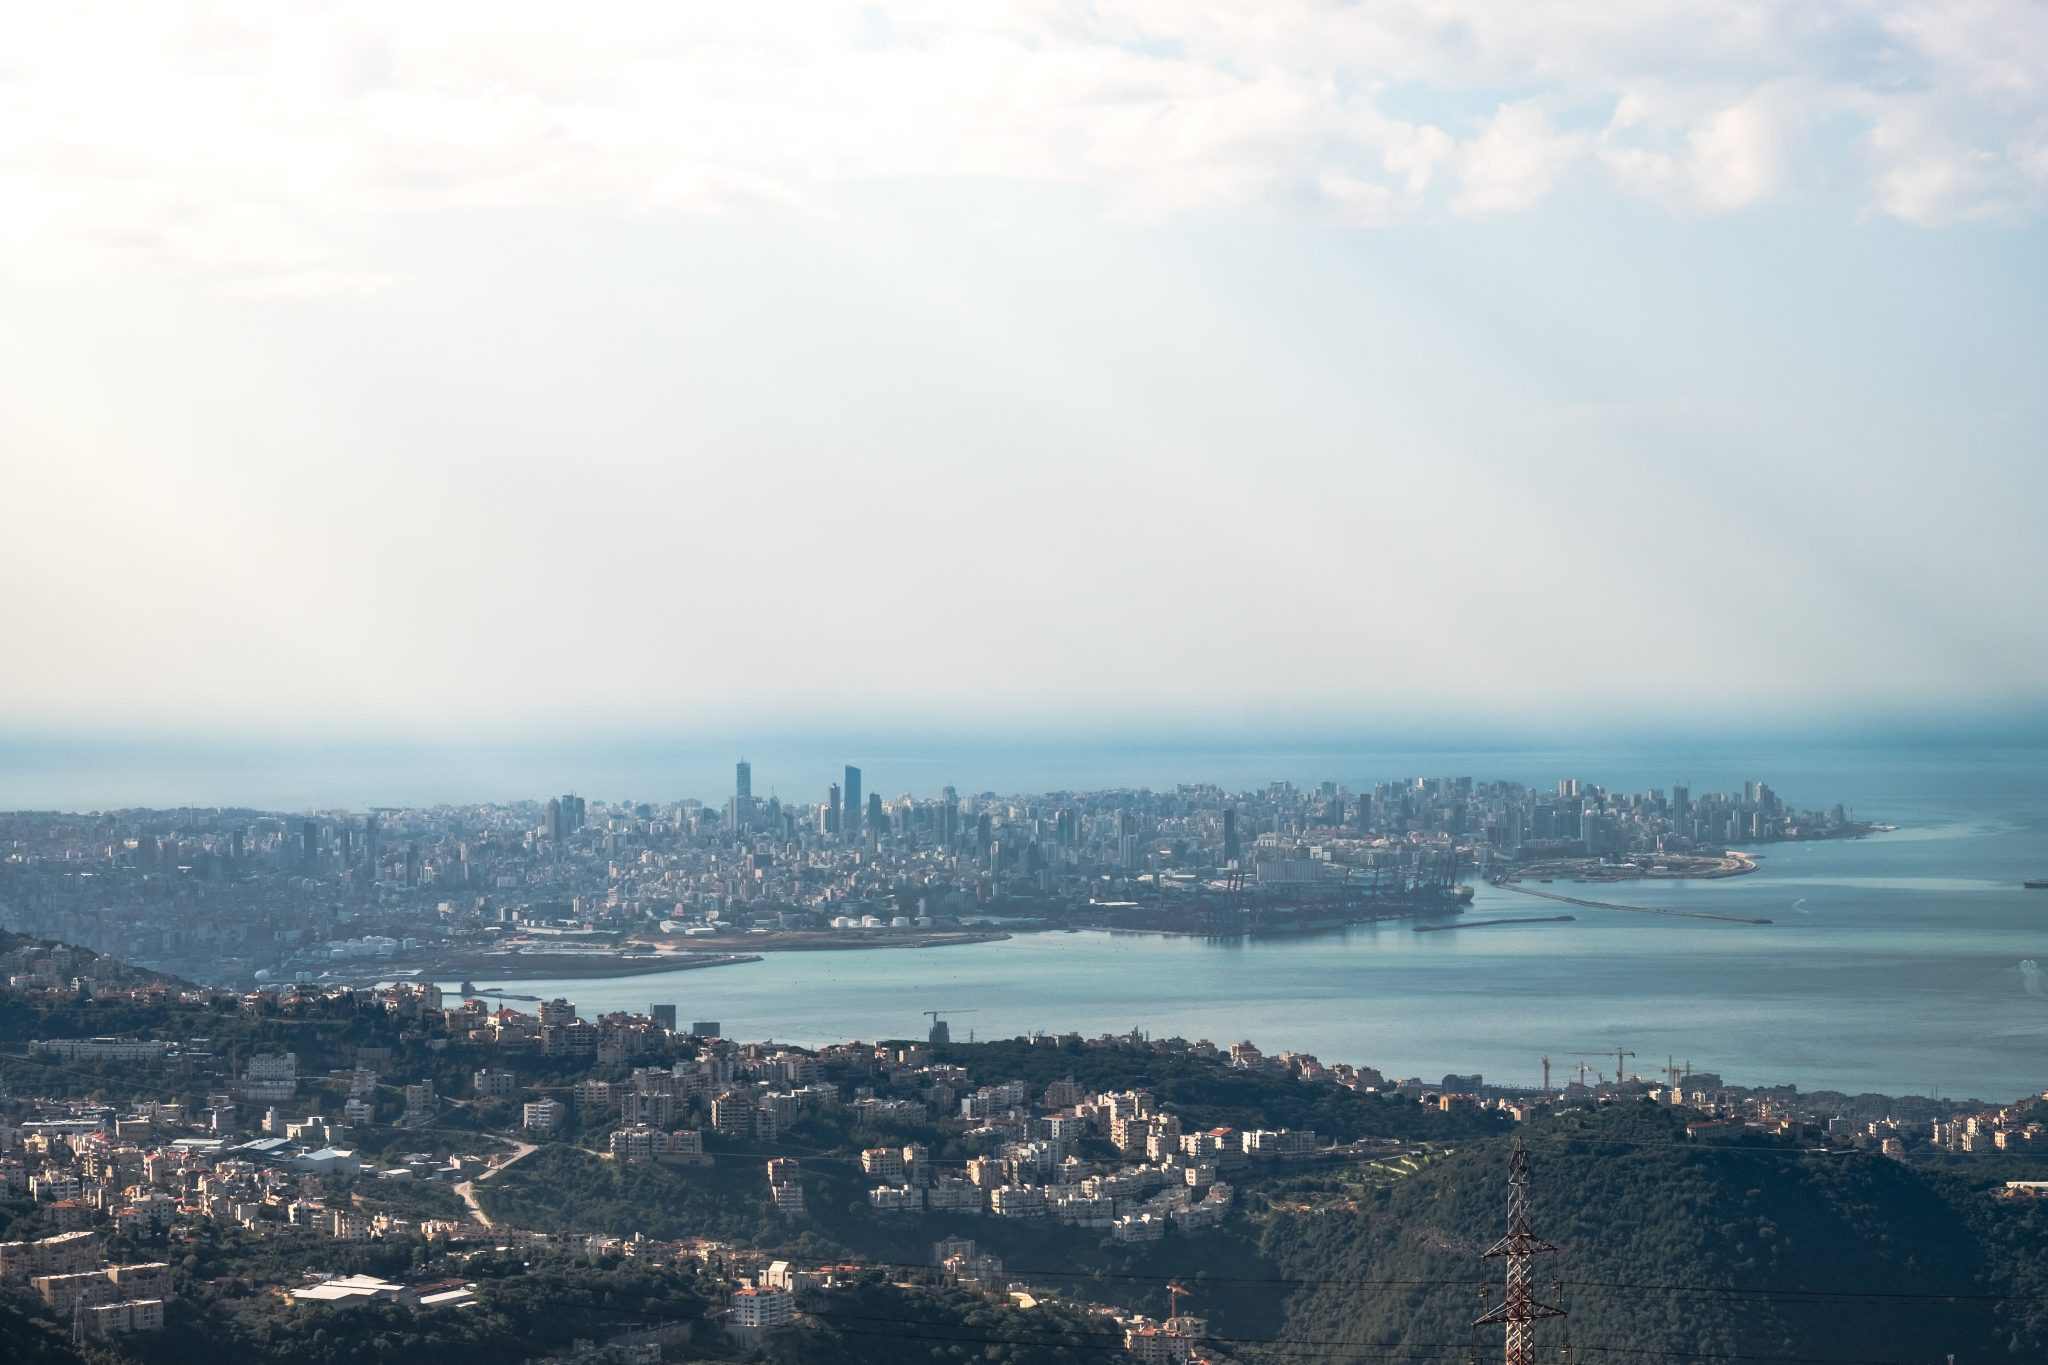 Panoramic view of the beirut peninsula photo by Jo Kassis